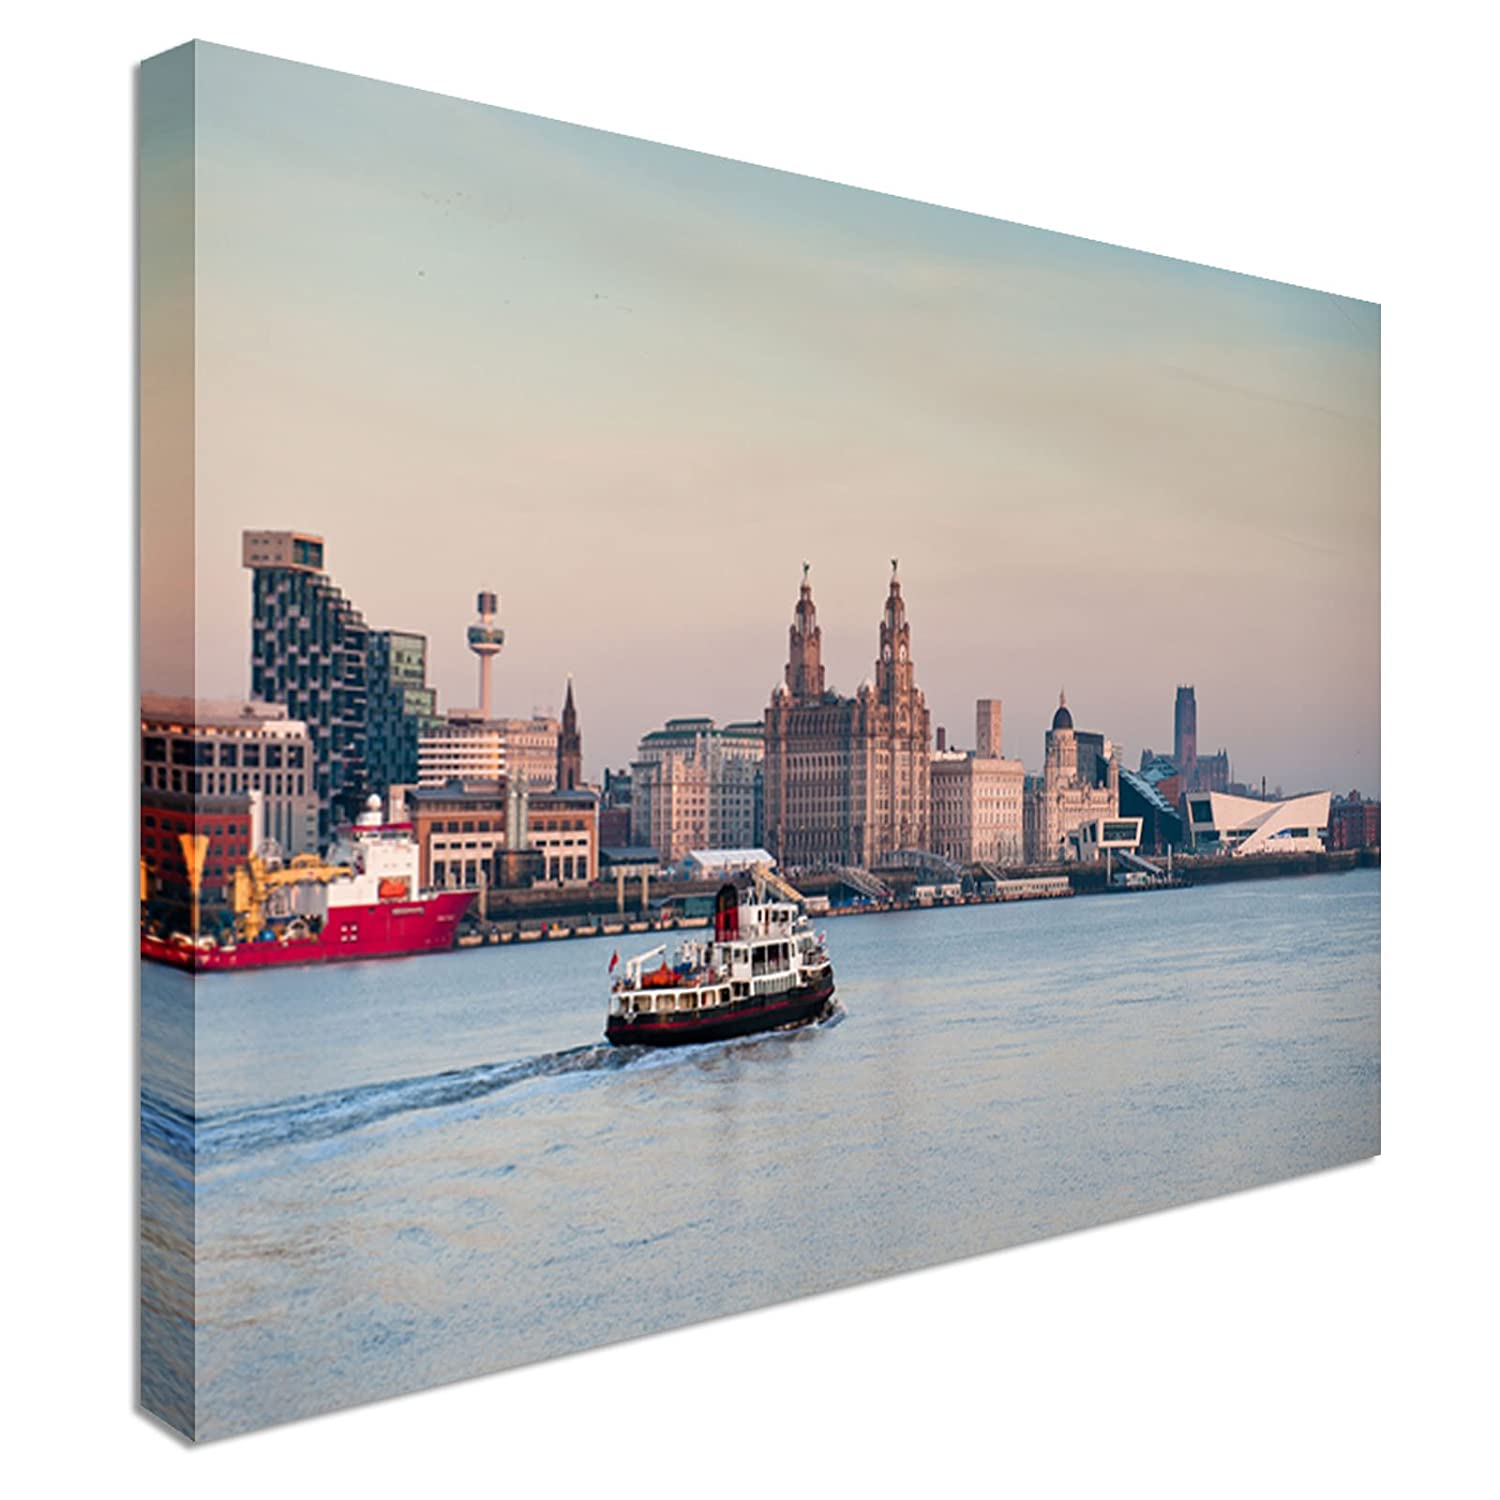 Liverpool Skyline Night Mersey River 40x20 Wall Picture Canvas Art Print bnw